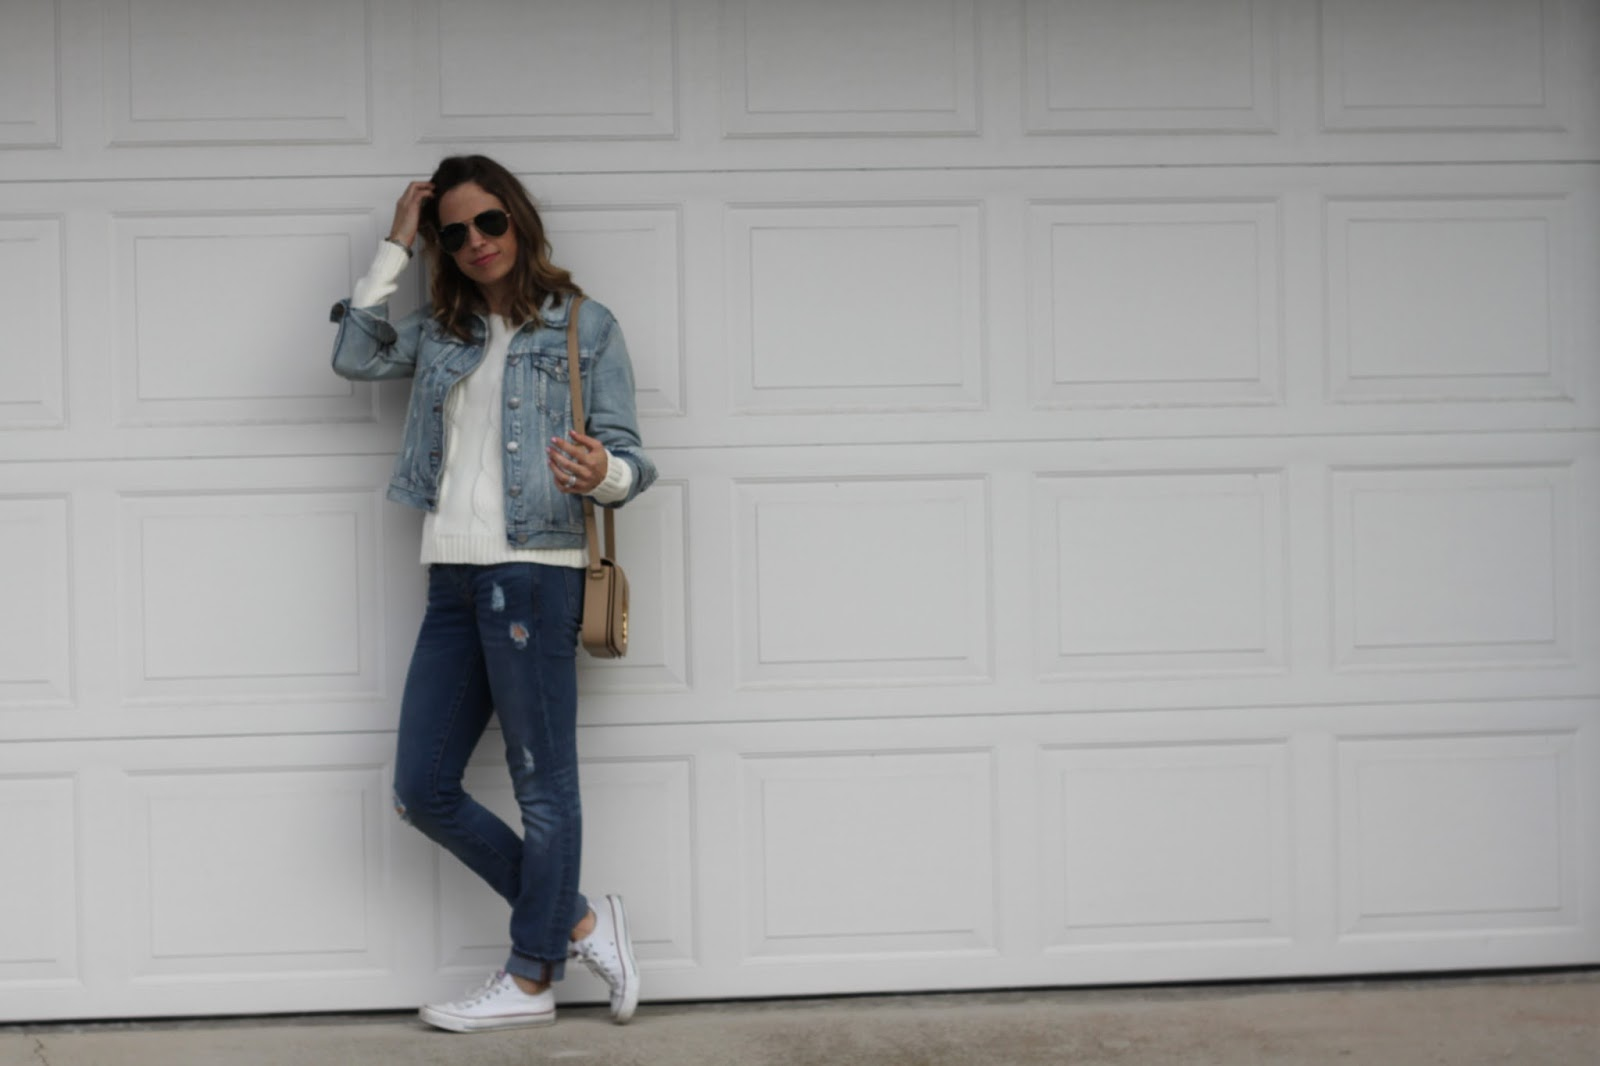 jeans and jean jacket outfit